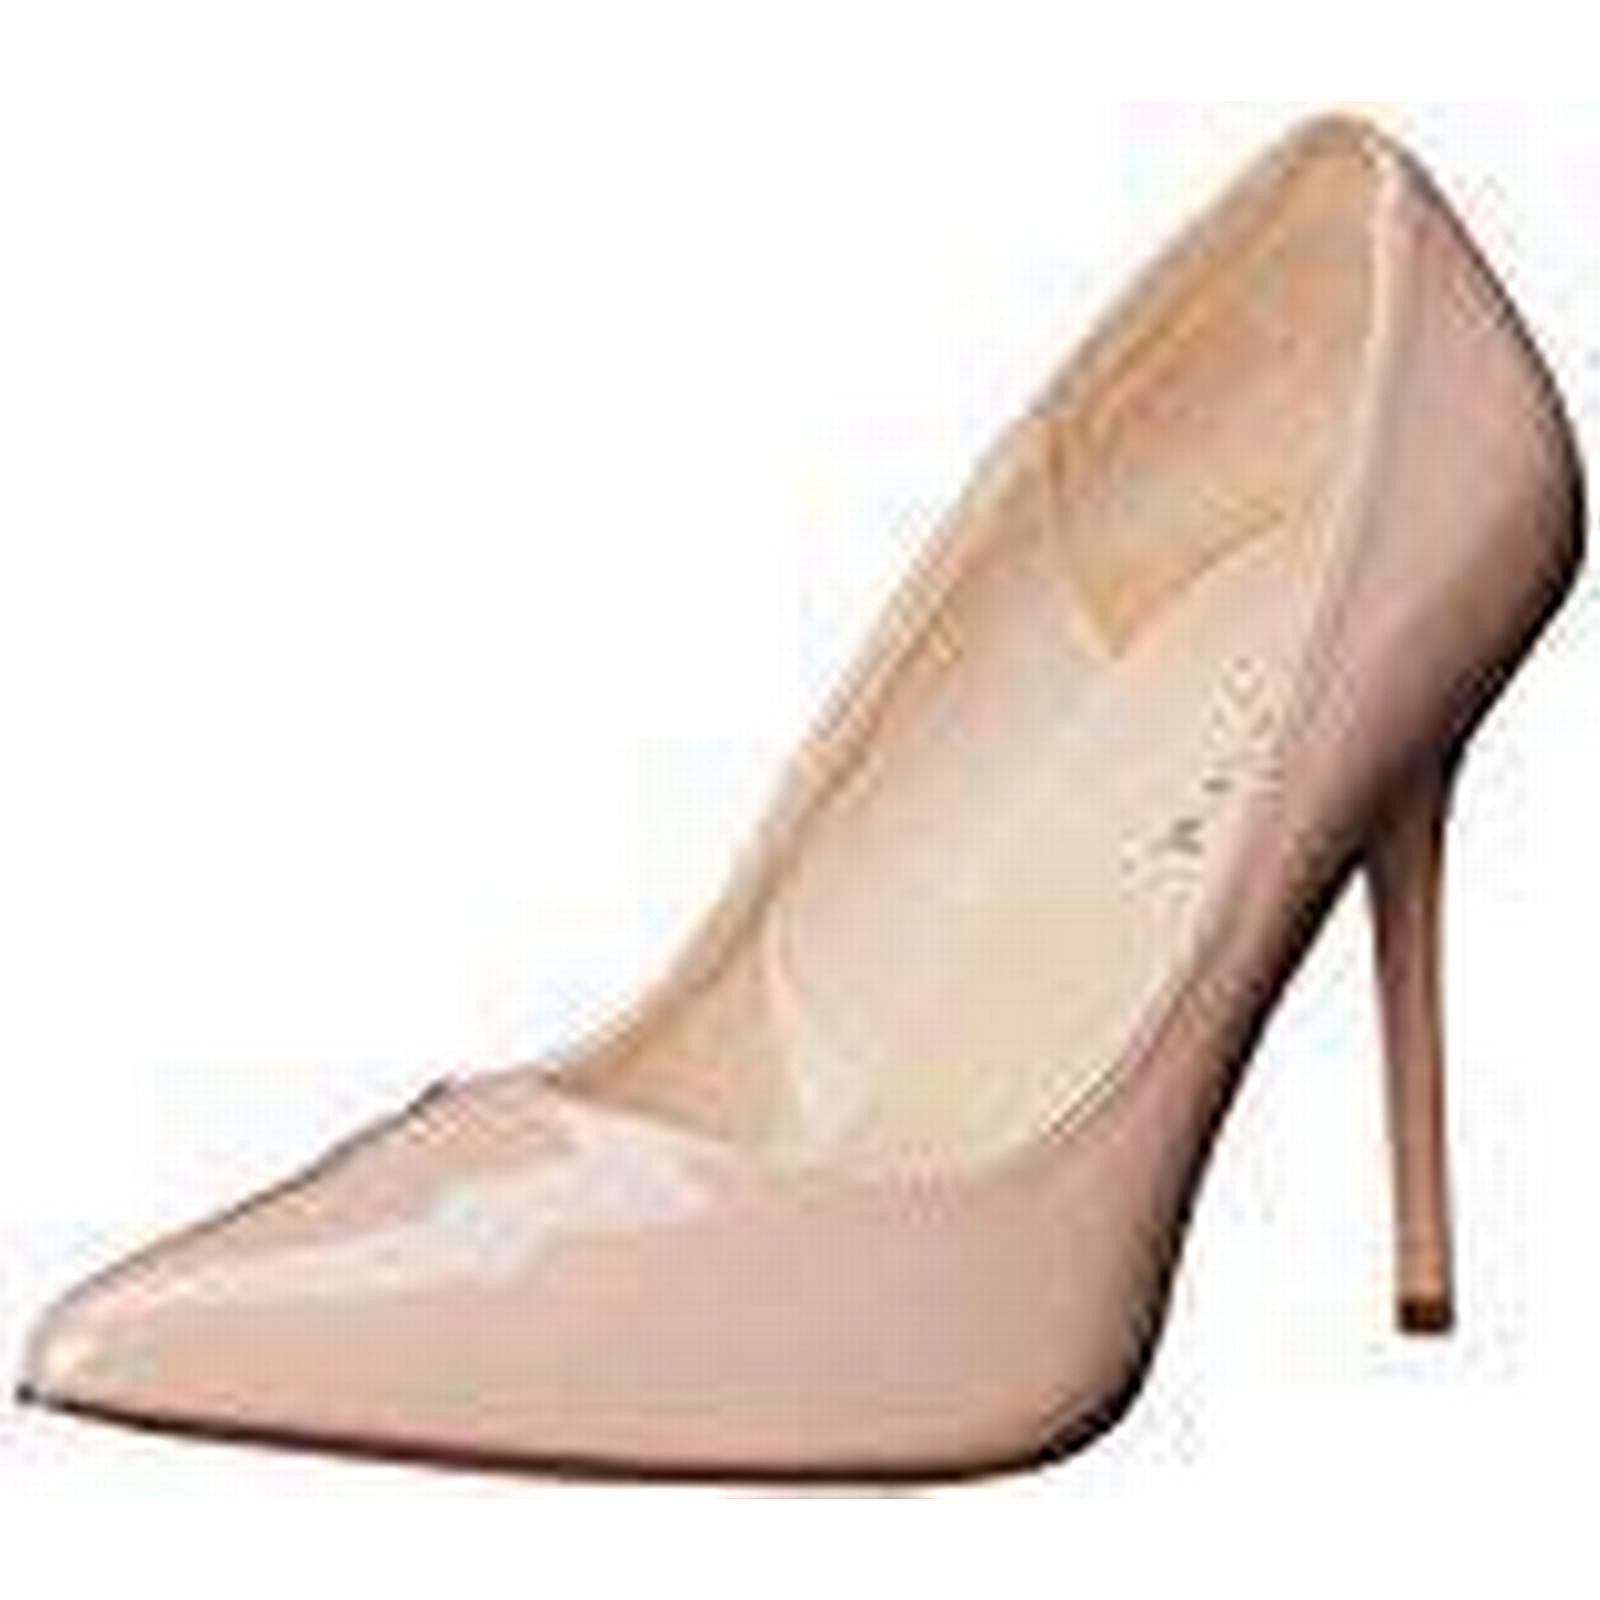 Pleaser Classique 20, Women's Closed-Toe (Nude Pumps & Heels, Beige (Nude Closed-Toe Pat), 11 UK (44 EU) c173c7